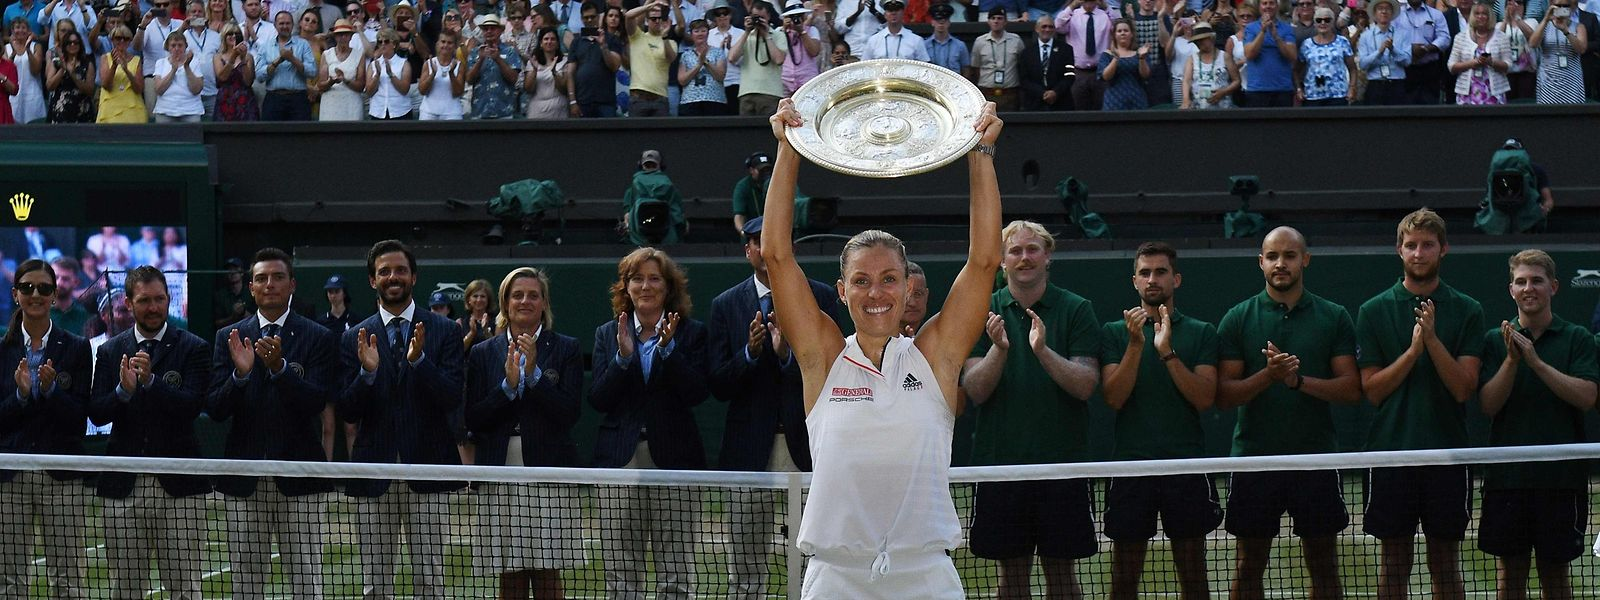 Angelique Kerber gewann 2018 in Wimbledon ihr drittes Grand-Slam-Turnier.